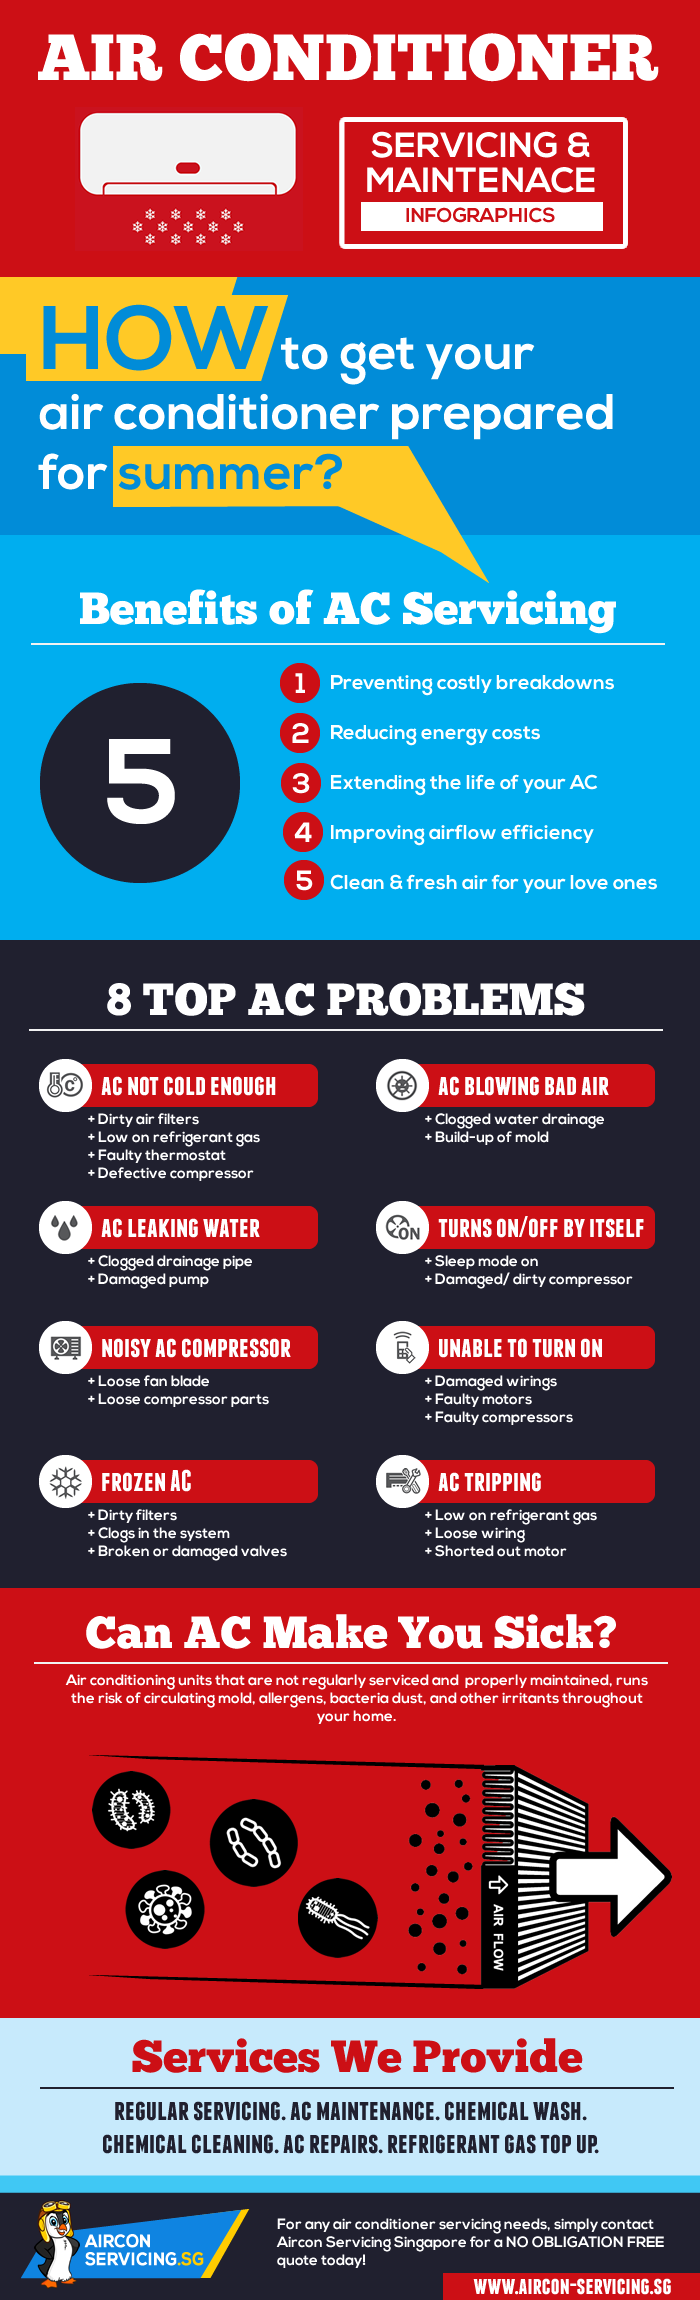 Air Conditioner Servicing & Maintenance 101